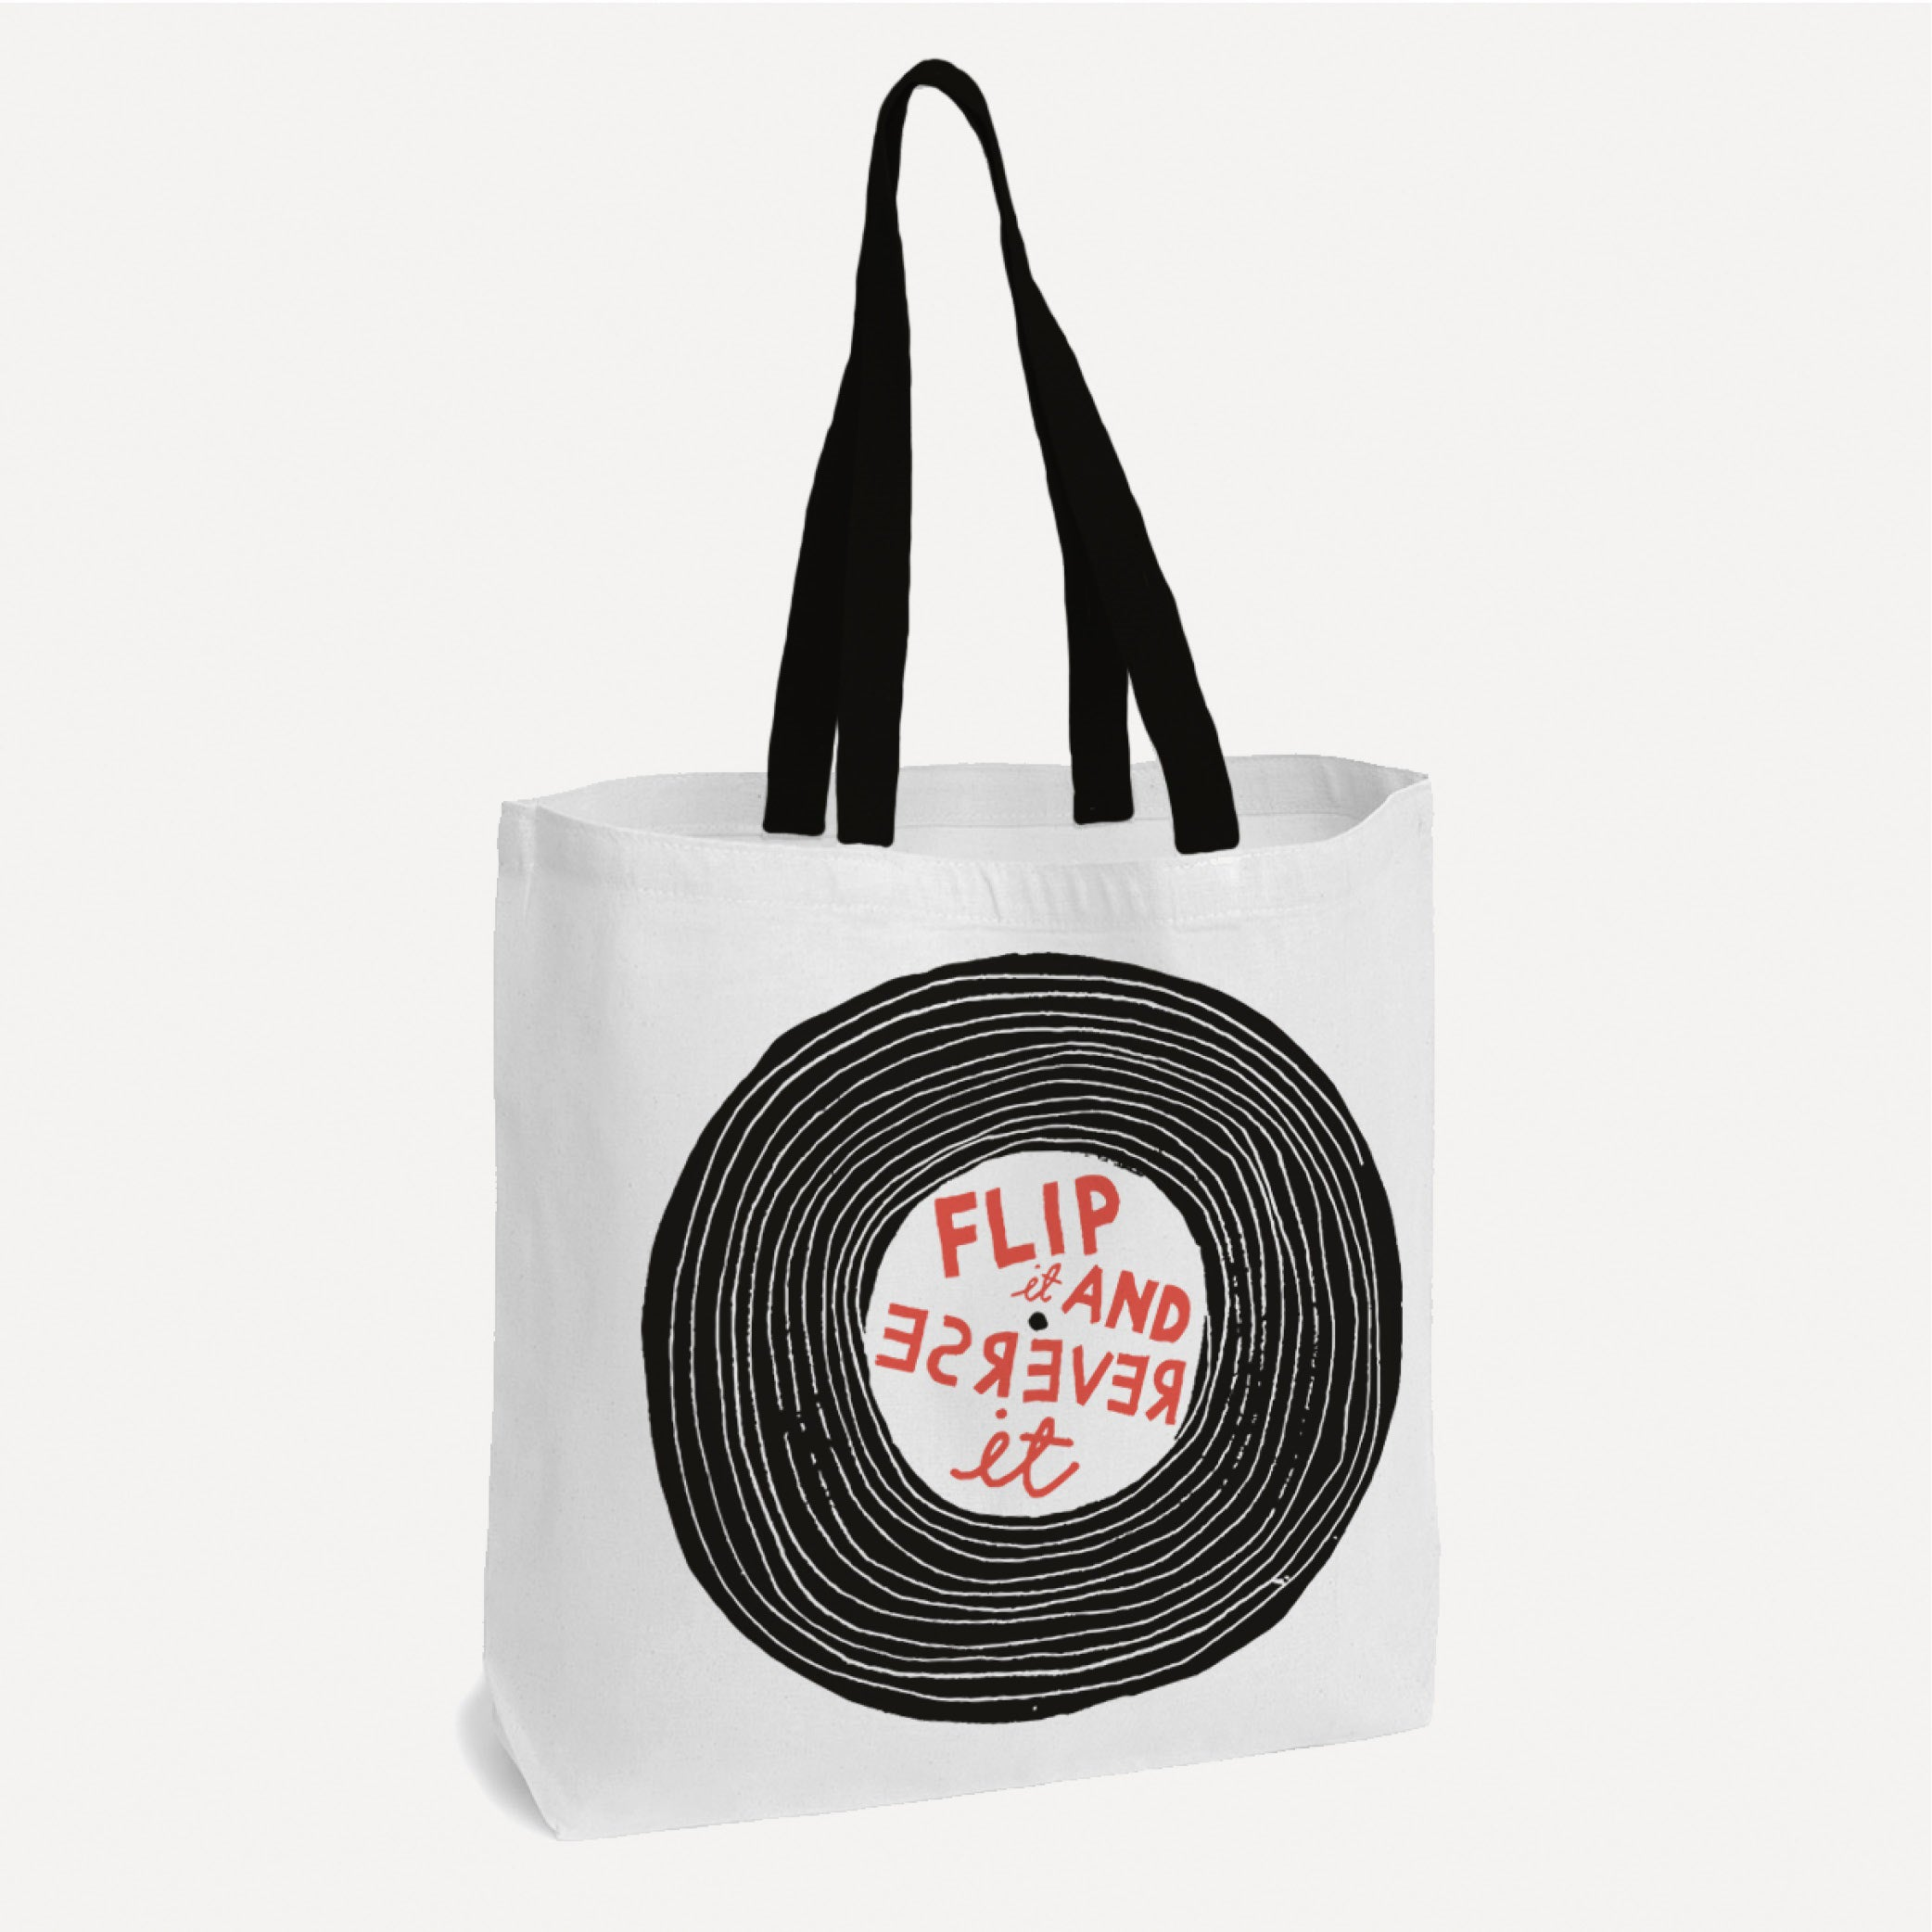 12ce56125991 Flip and Reverse It Tote Bag - BALTIC Shop